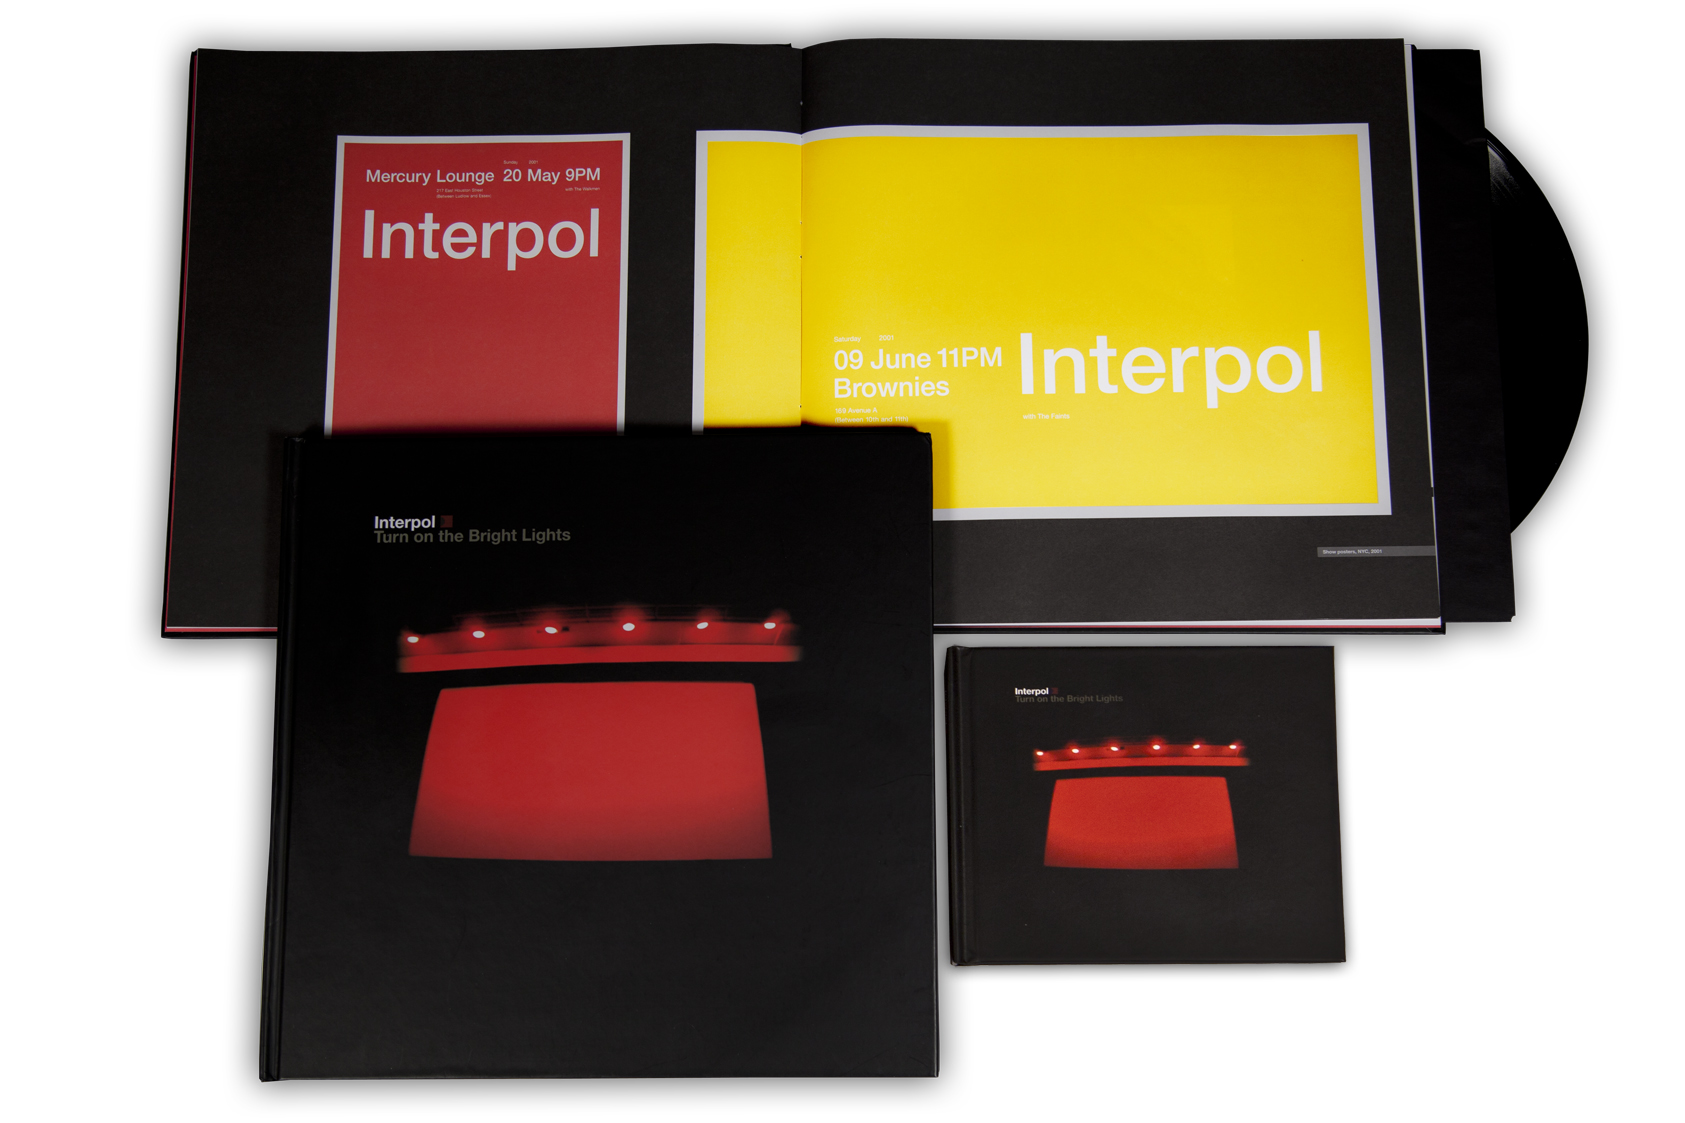 Interpol 2_Lowres